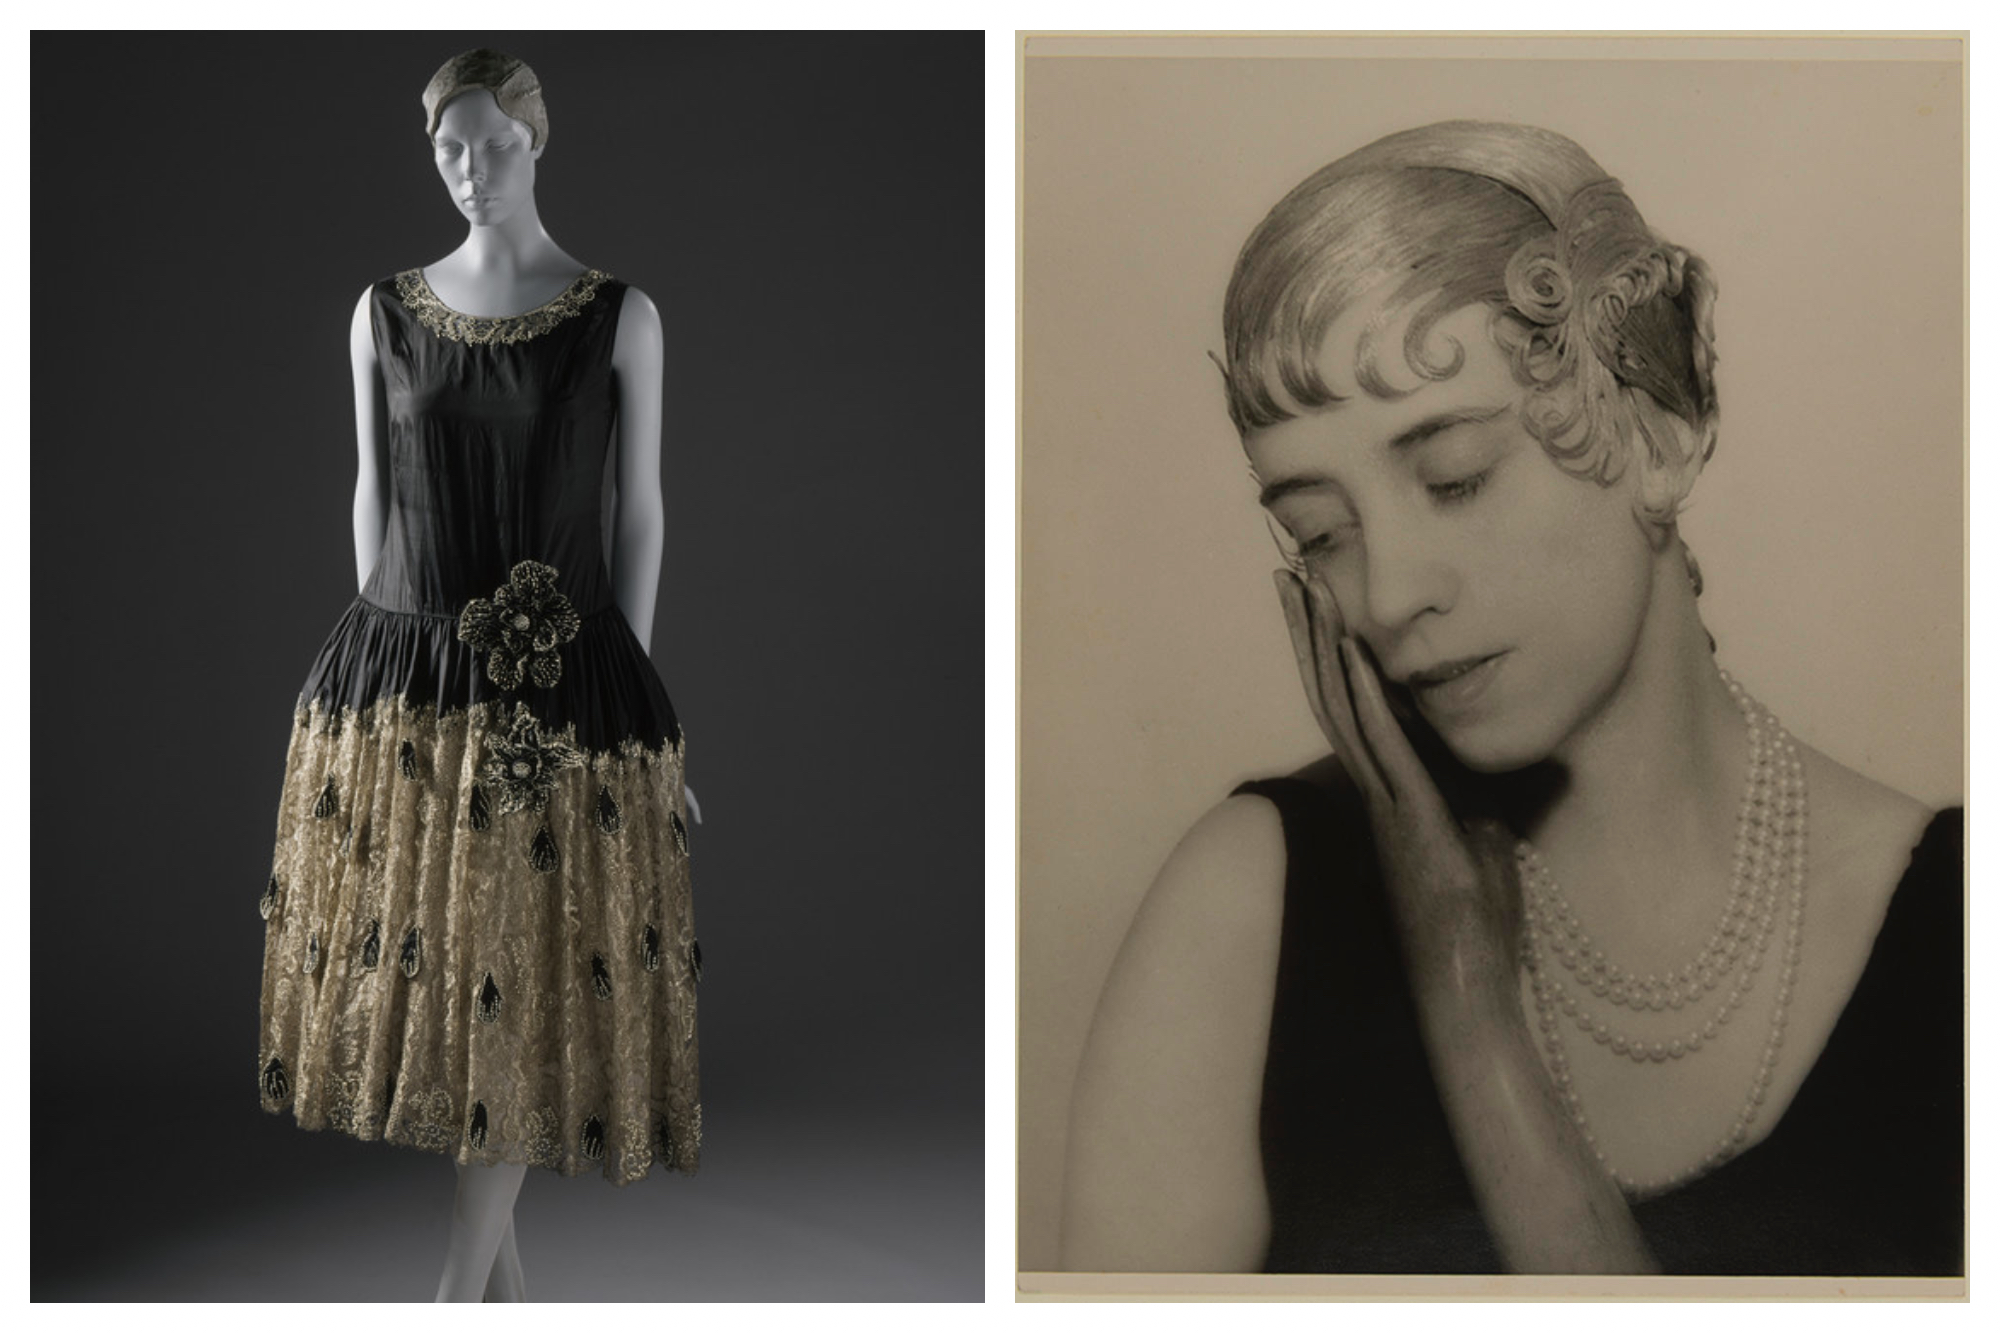 Left, a dress by Jeanne Lanvin on a mannequin. Right, a portrait of a woman with her hand resting on her cheek by Man Rey.